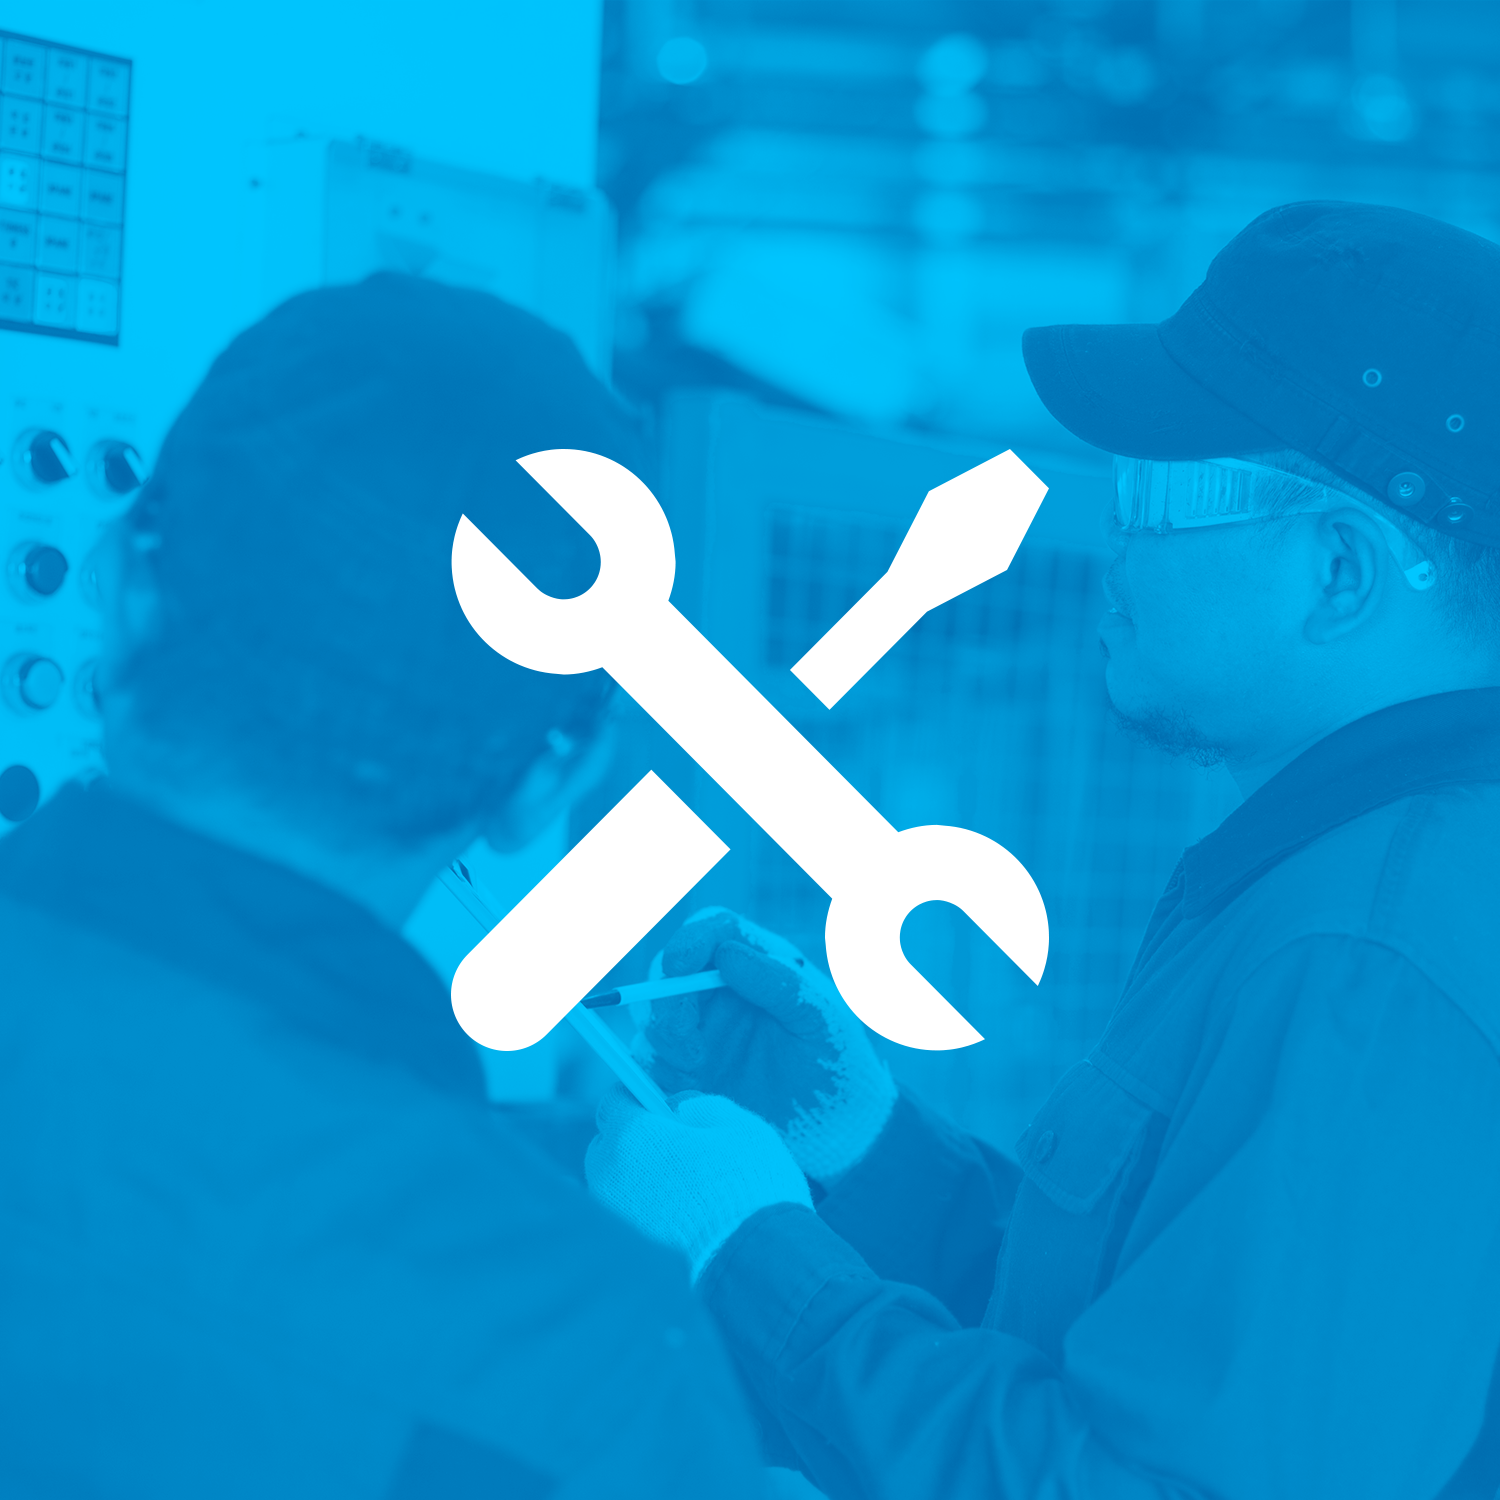 two men working on machine with blue overlay and white wrench icon